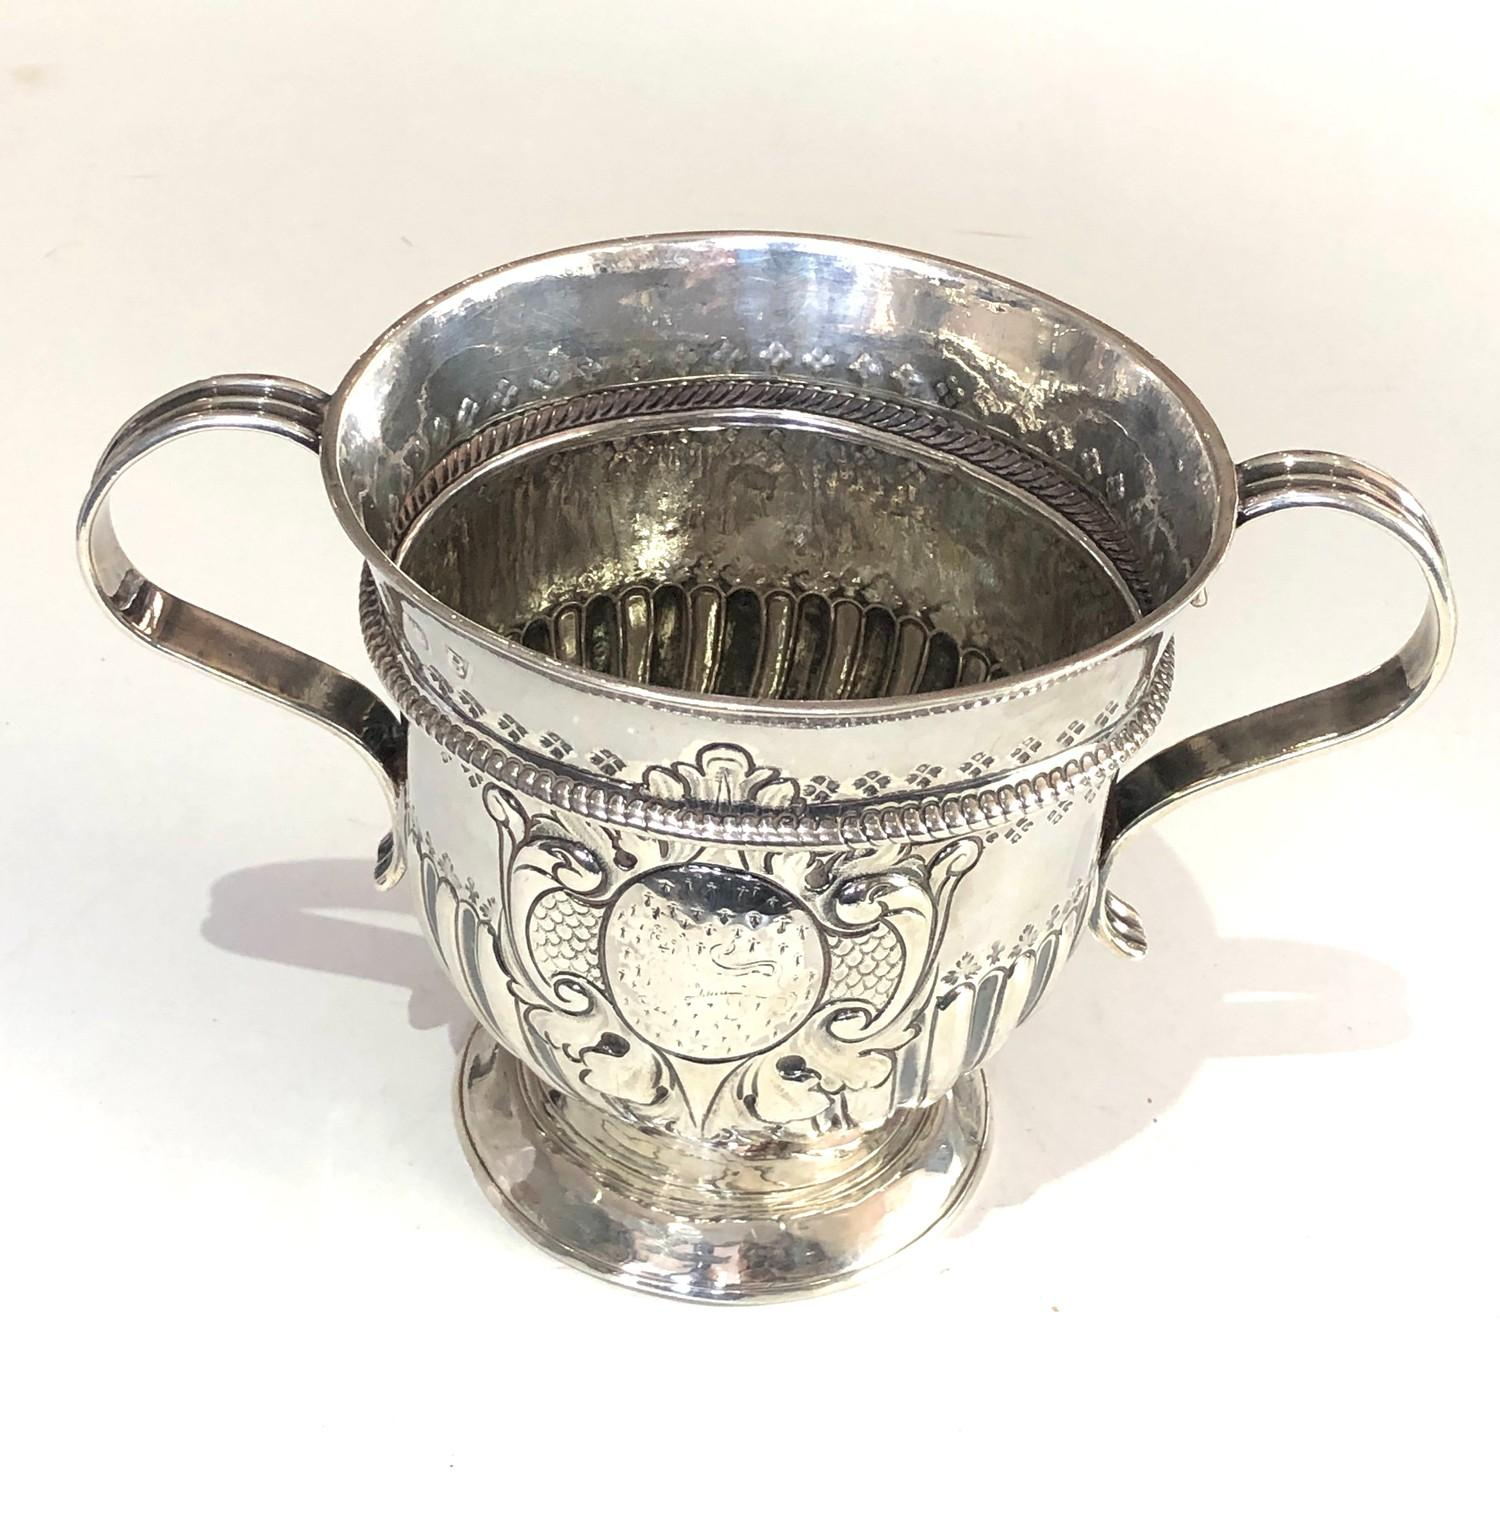 Rare George 1 silver Porringer full london silver hallmarks date letter B for 1717 measures approx - Image 2 of 9